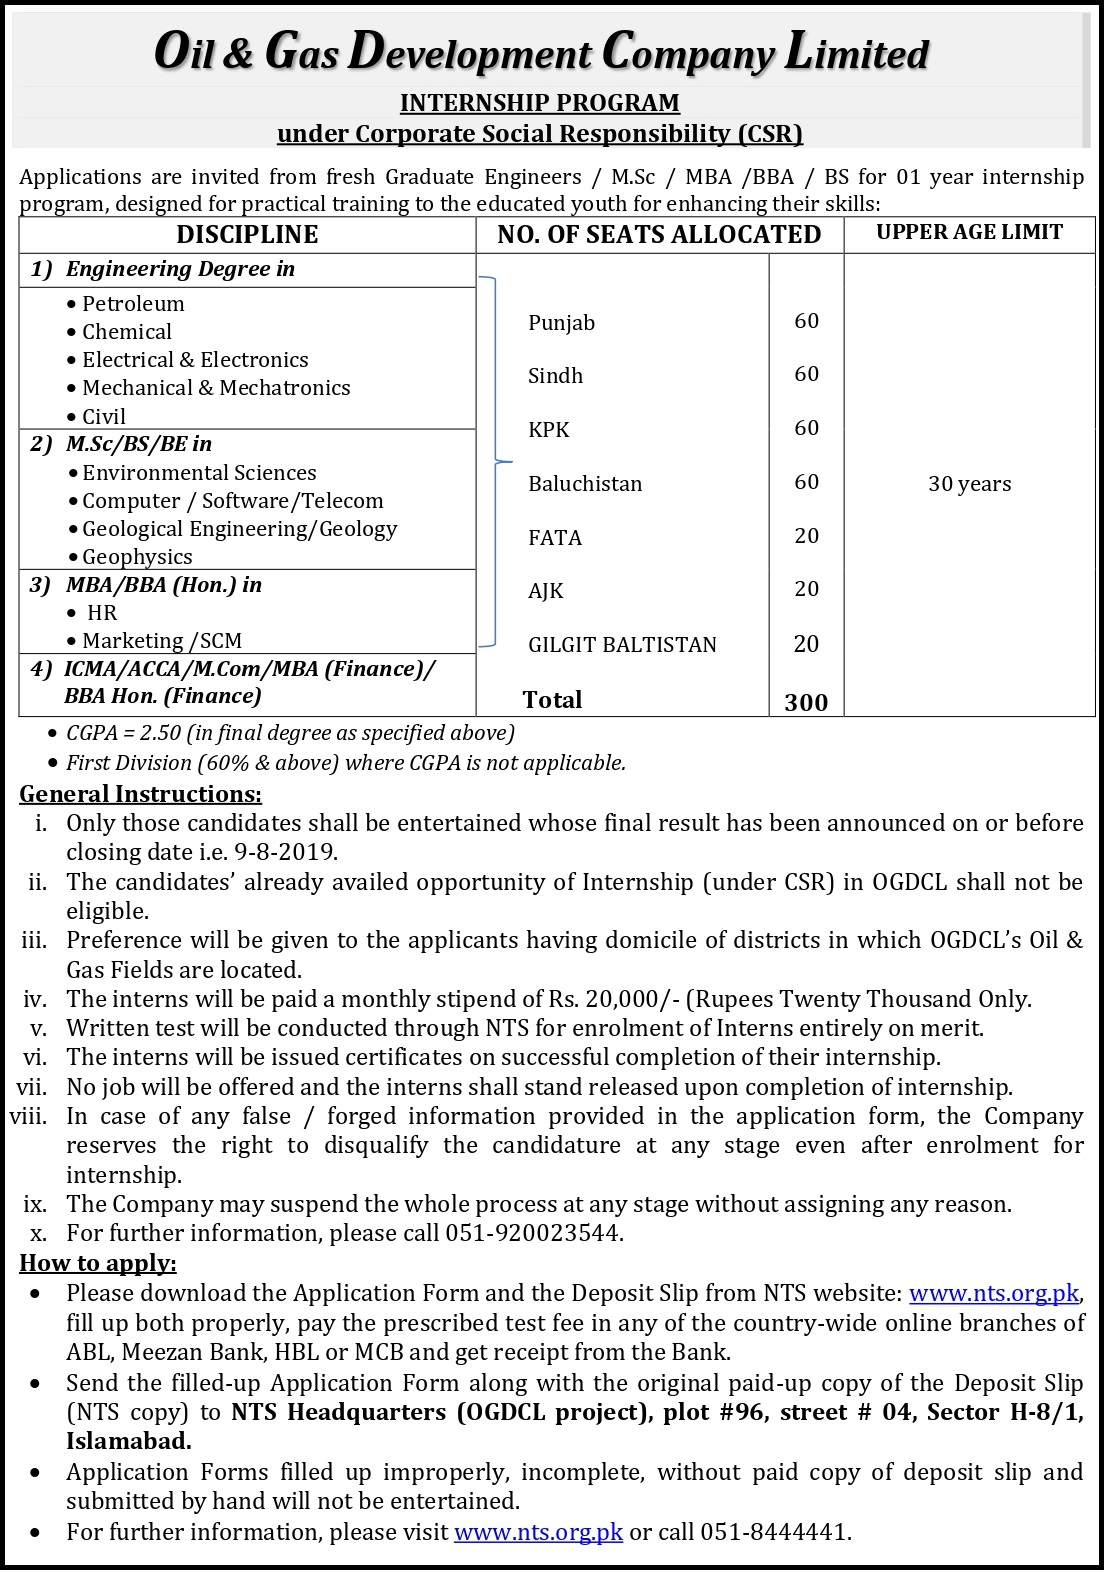 Oil and Gas Development Company Limited OGDCL 2019 NTS